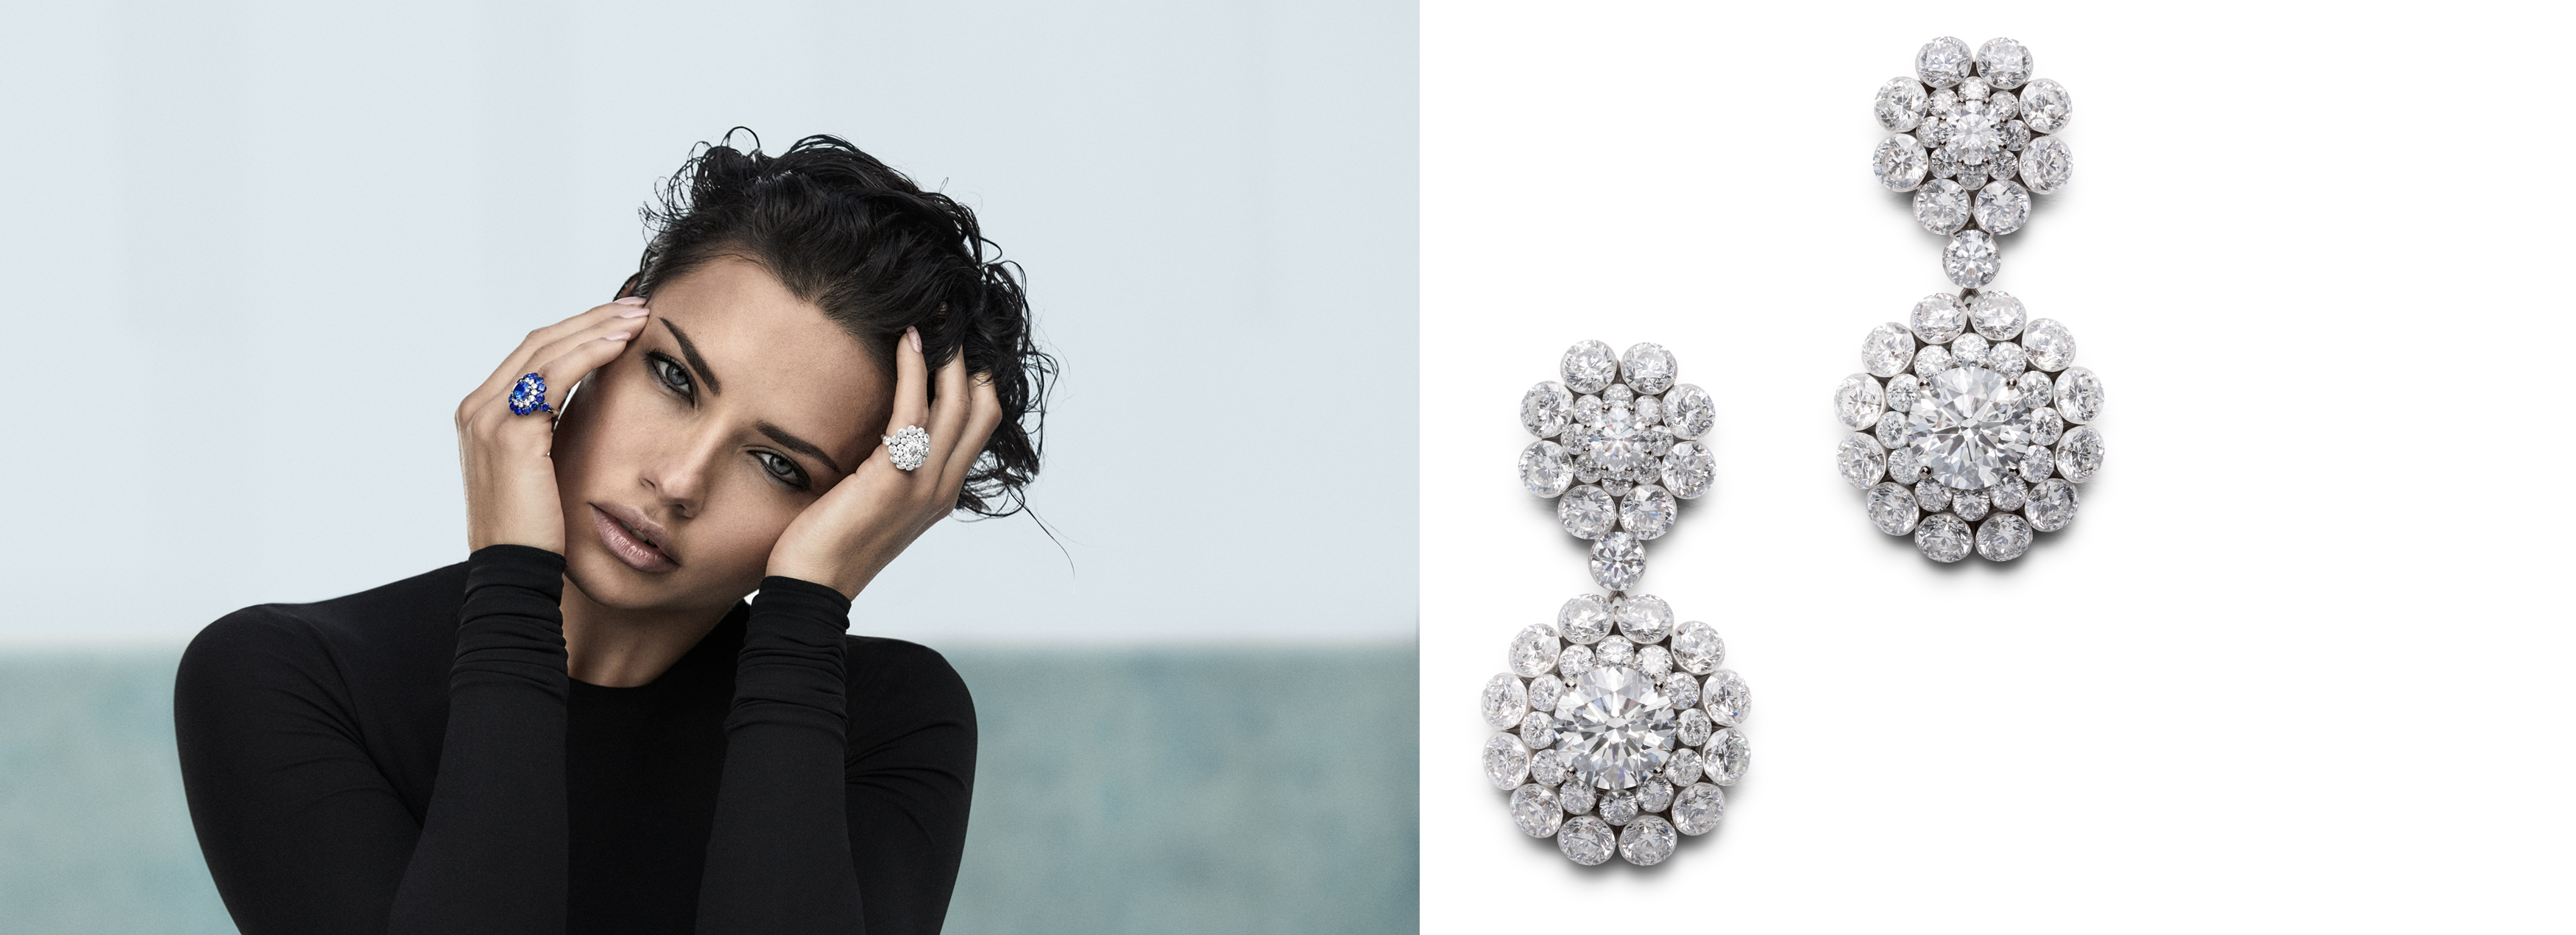 Image of Model Adriana Lima wearing Magical setting rings on left and close-up of Diamond earrings on right